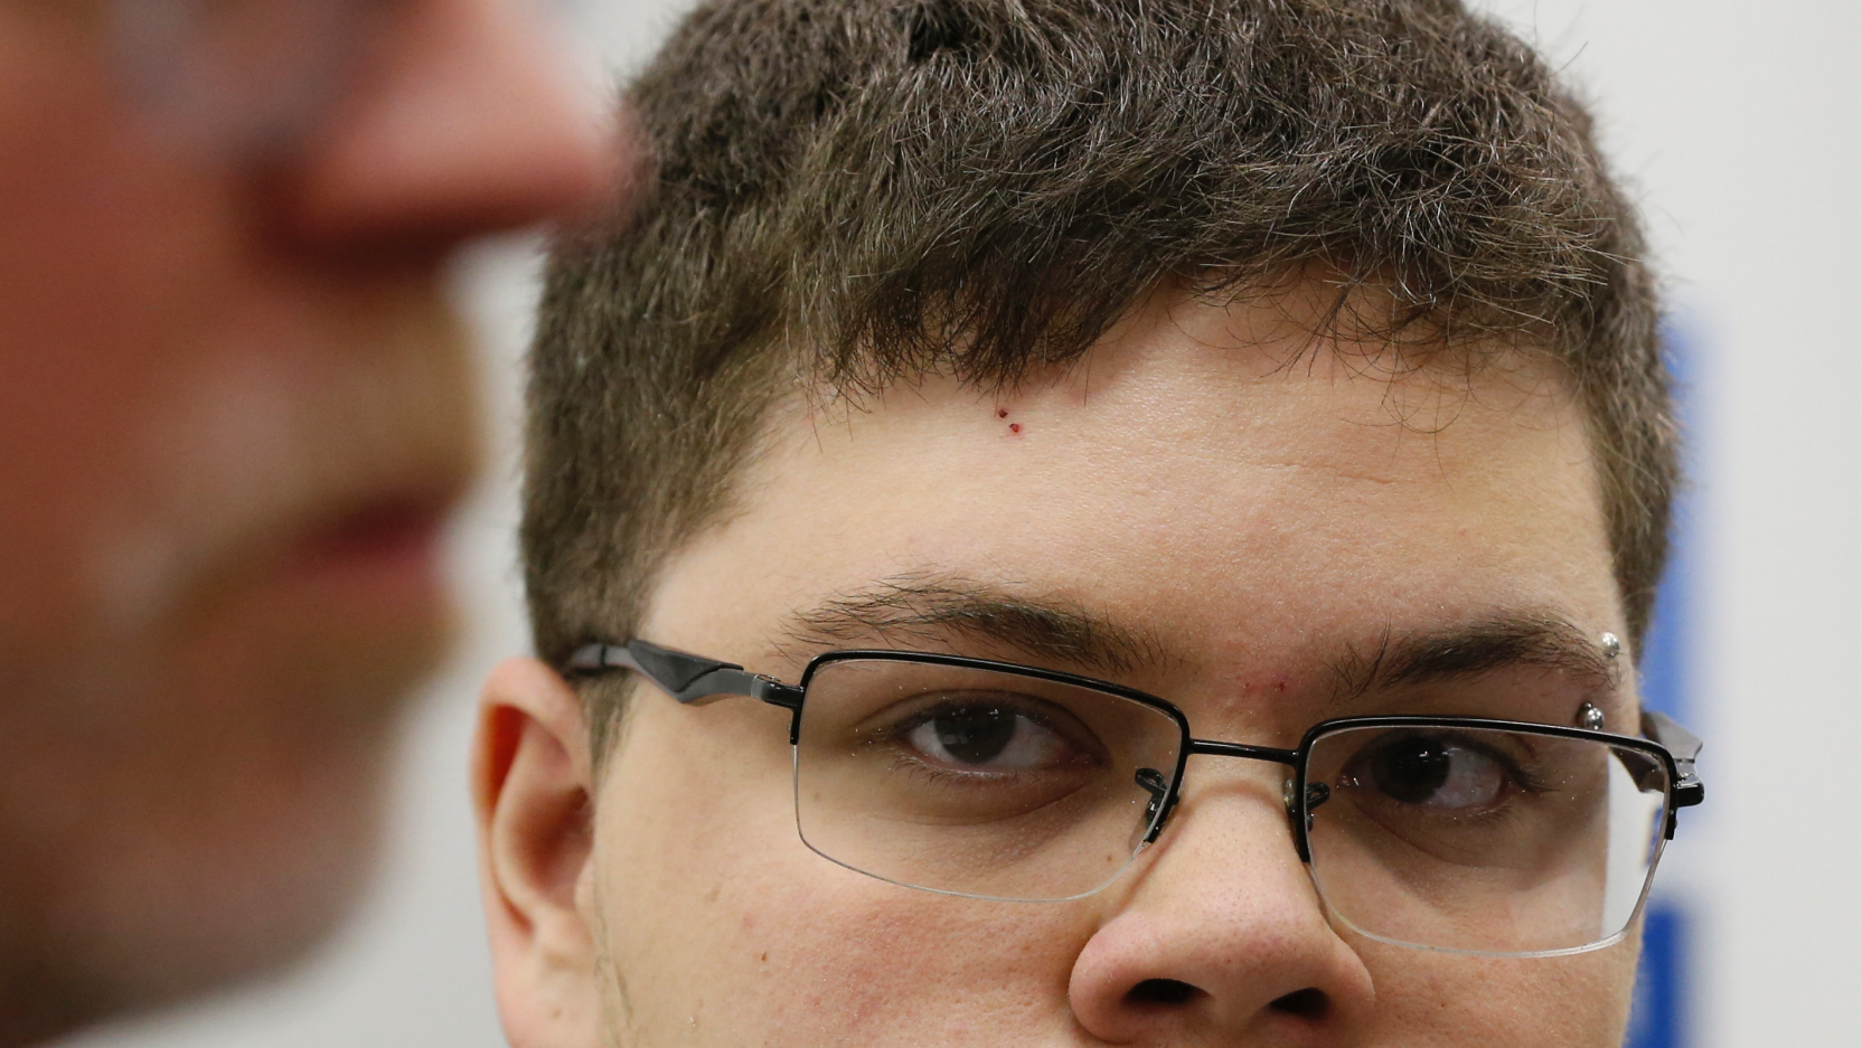 FILE - In this March 6, 2017, file photo, Gloucester County High School senior Gavin Grimm, a transgender student, listens to a speaker during a news conference in Richmond, Va. Grimm is continuing to sue the Gloucester County School Board in Virginia over a policy that banned him from using the boys' bathrooms. He's now trying to amend the suit to include the matter of his unchanged transcripts. (AP Photo/Steve Helber, File)